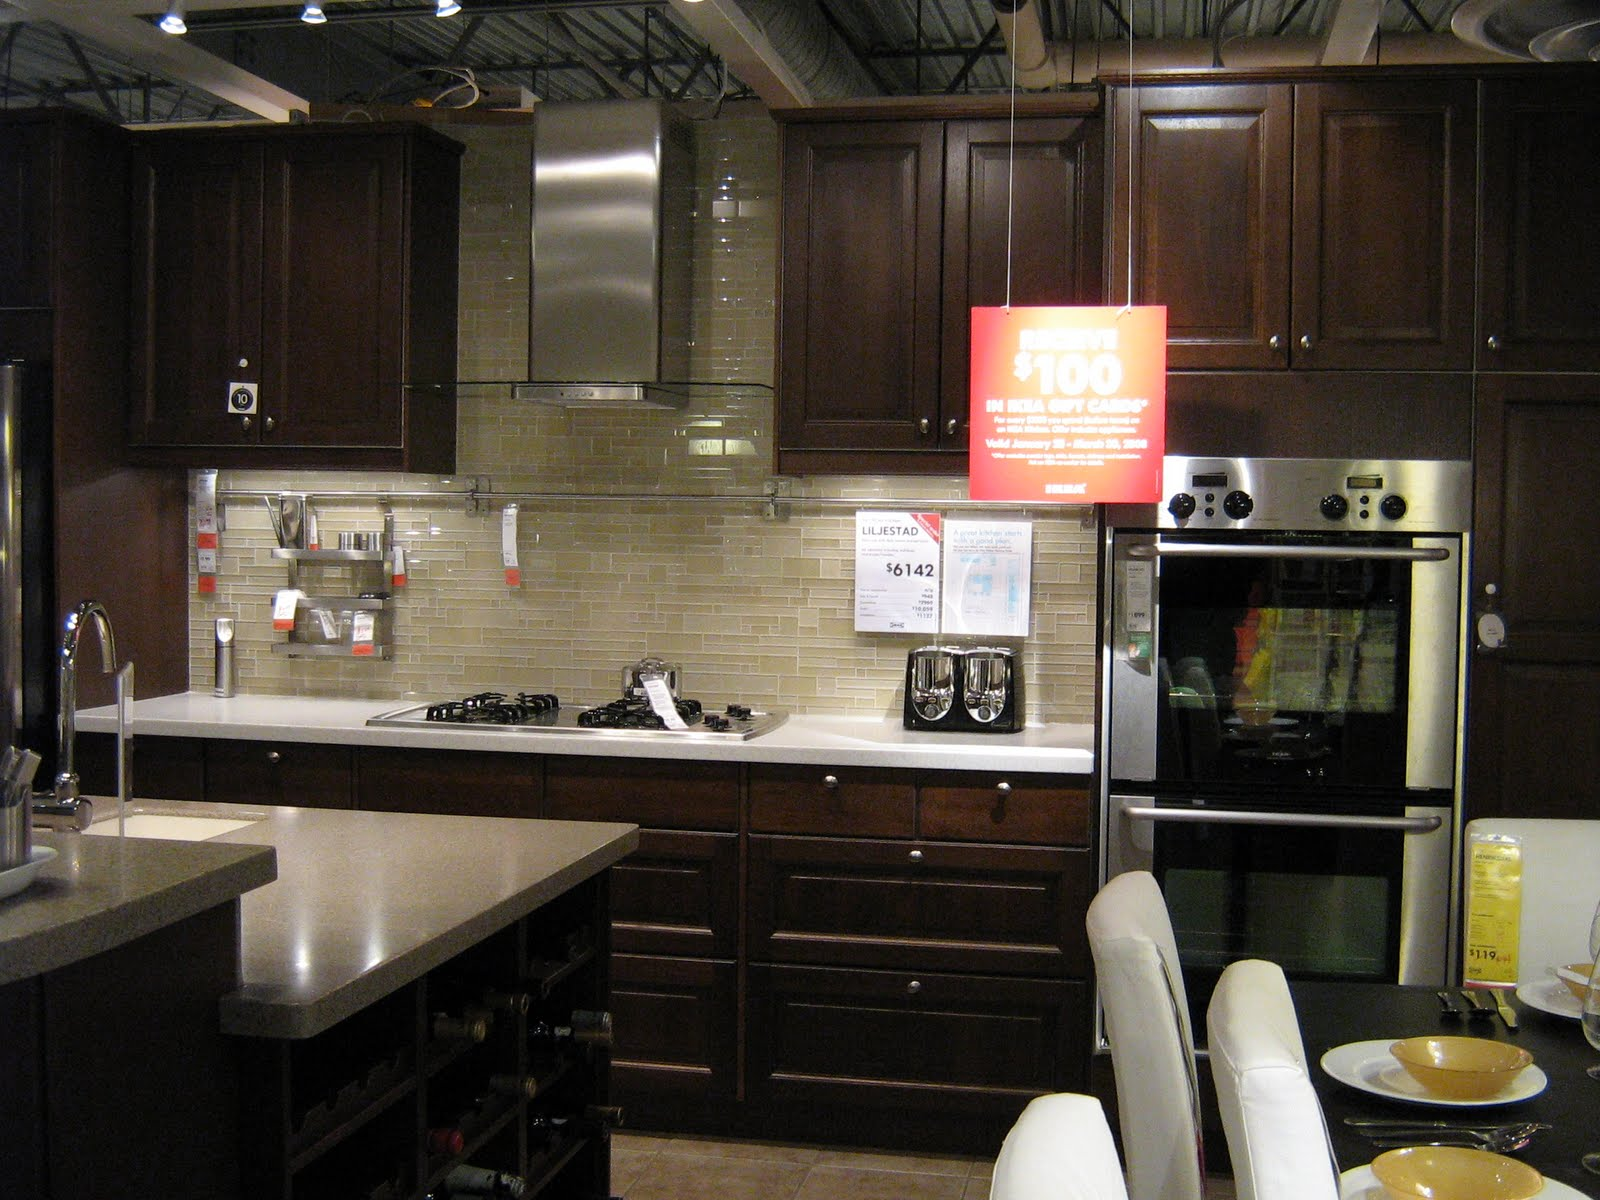 Pictures Of IKEA Kitchens Dark Wood Cabinets And Light Sand Tones Glass Tile